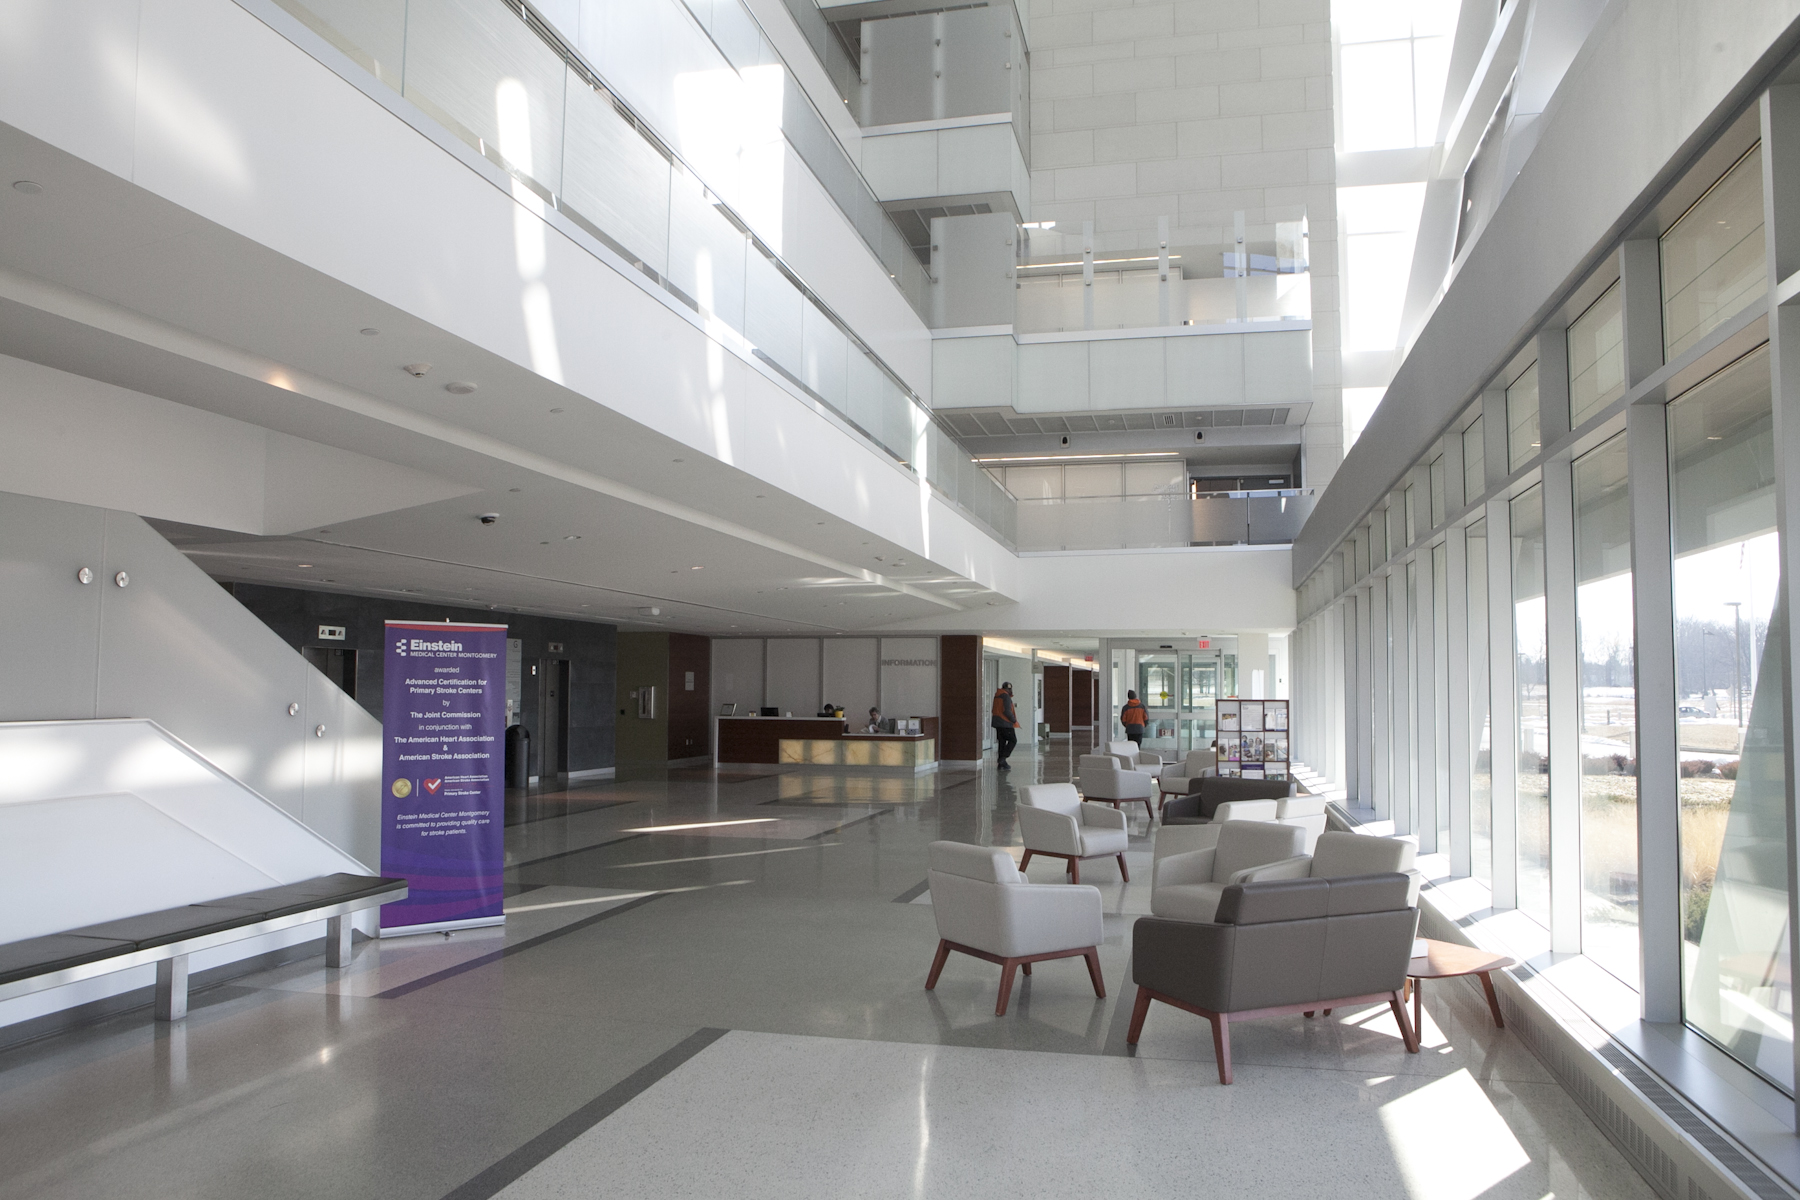 image of lobby